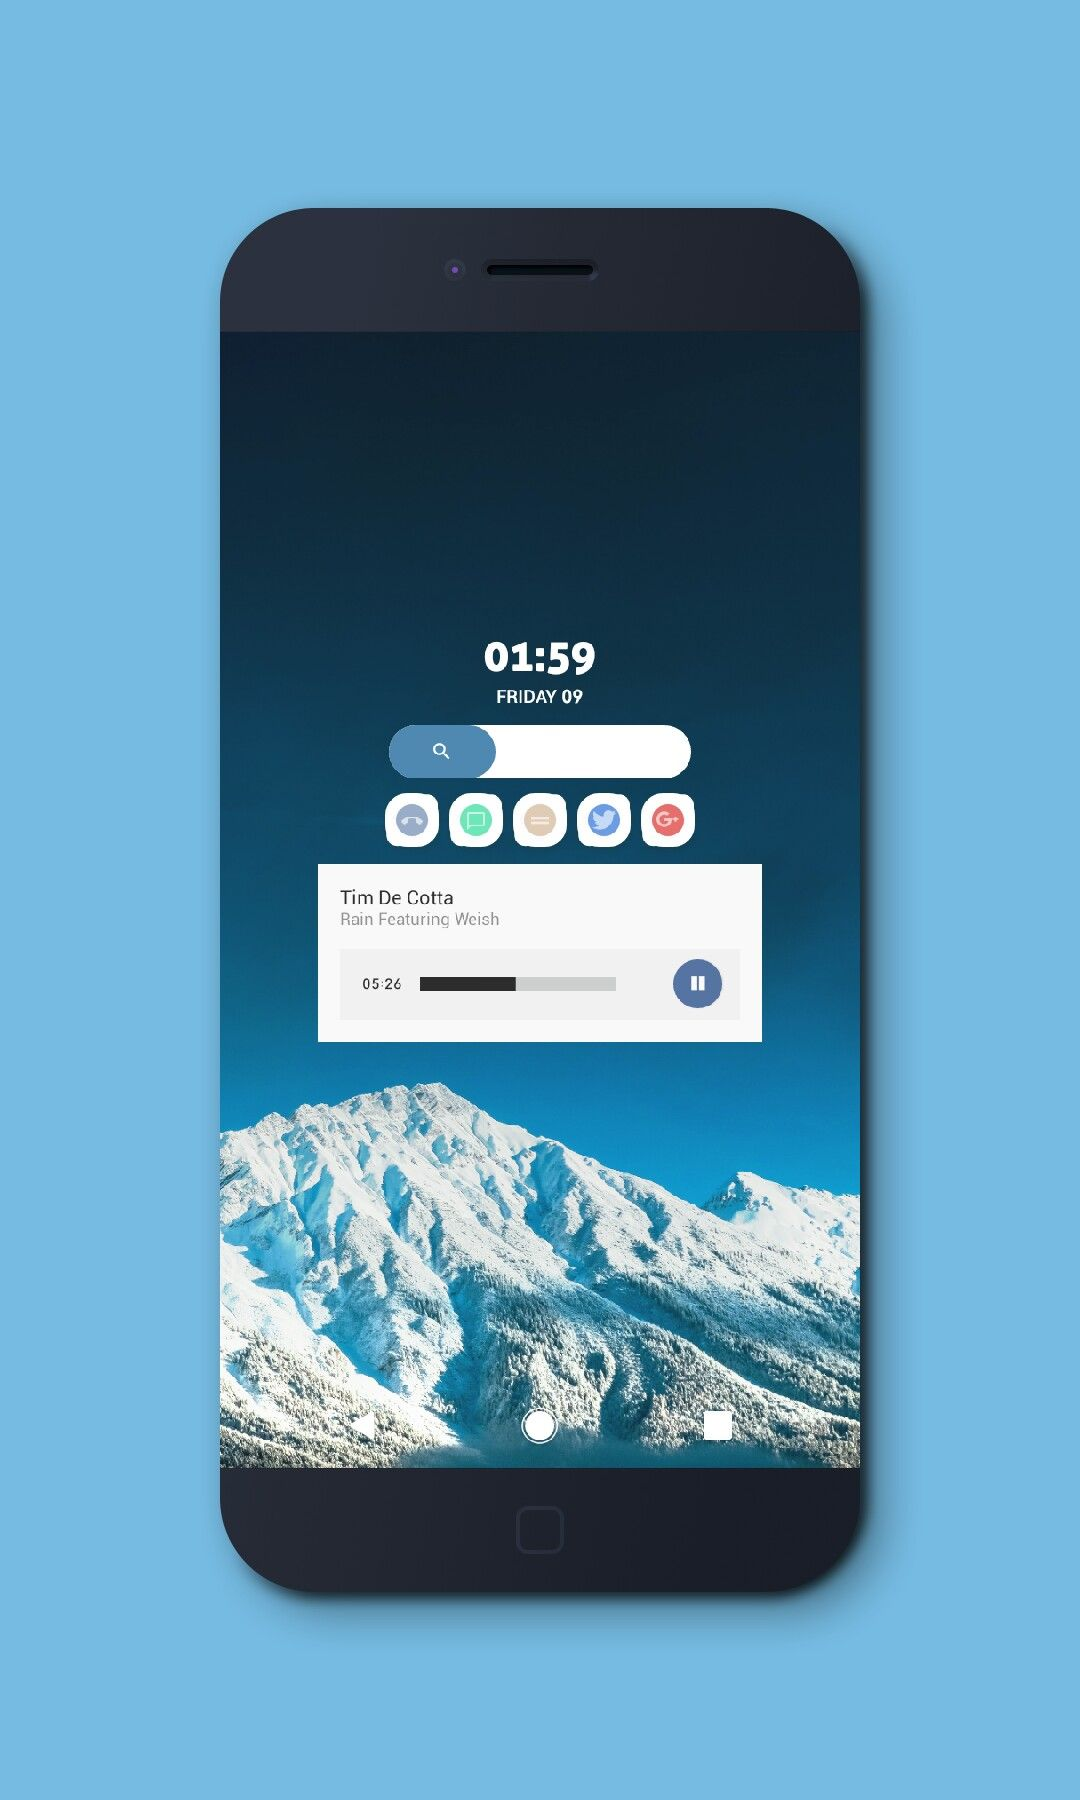 Pin by HM Milaners on Kustom Live Wallpaper KLWP Phone